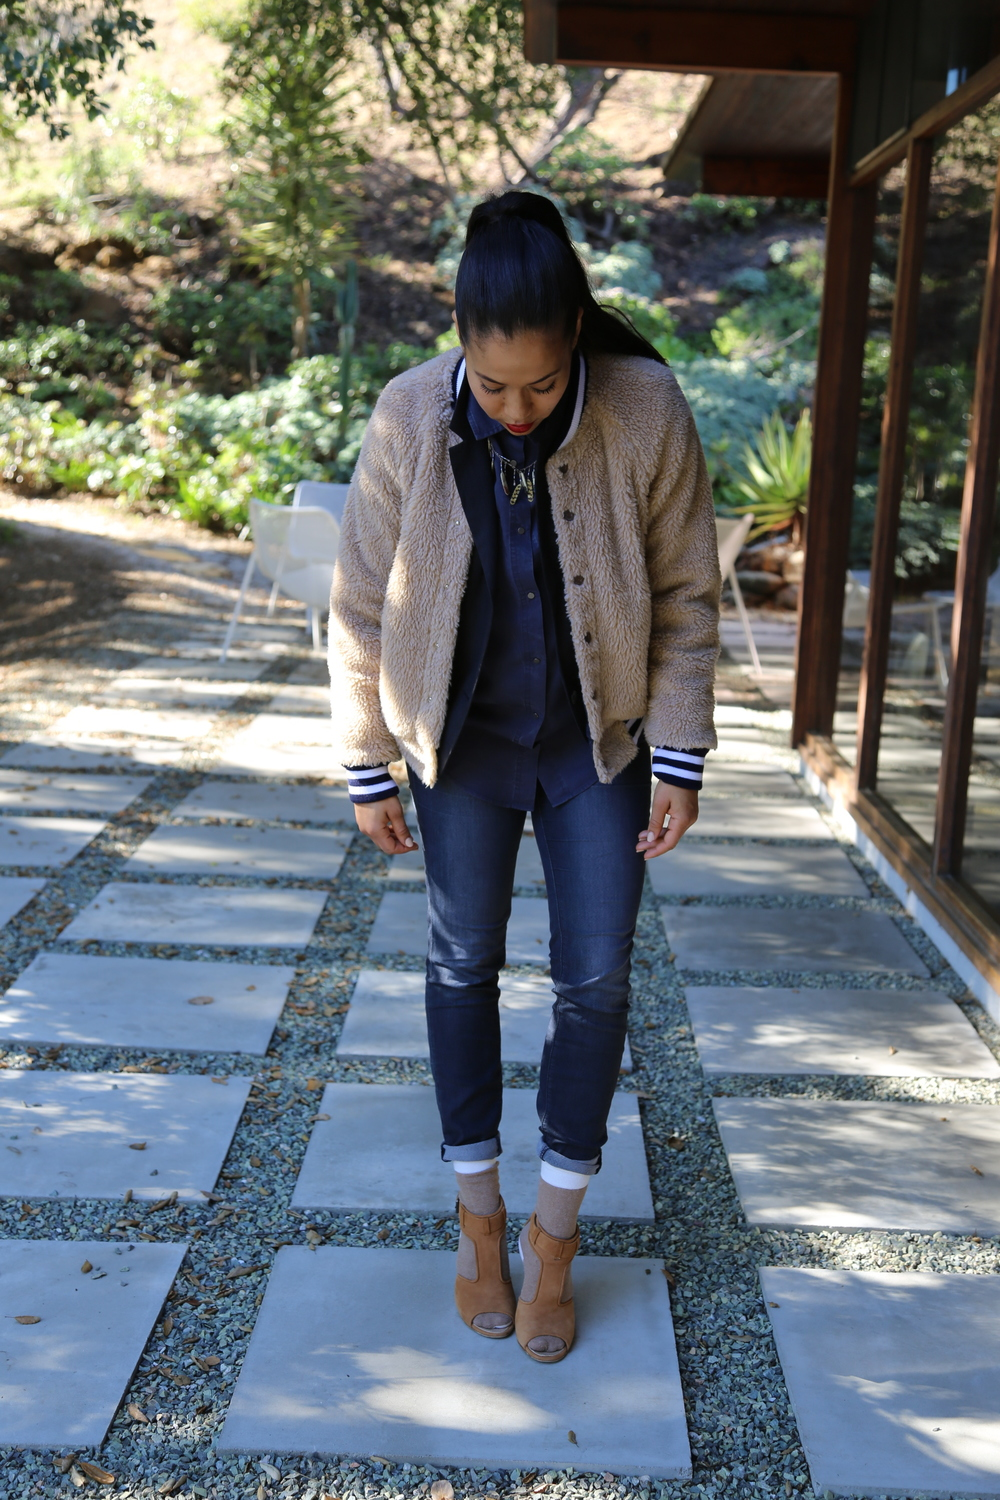 mother-fur-jacket-bomber-j-brand-jeans-proenz-schouler-jeans-skinny-socks-isabel-marant-blazer-feather-necklace-camel-neutral-los-angeles.jpg